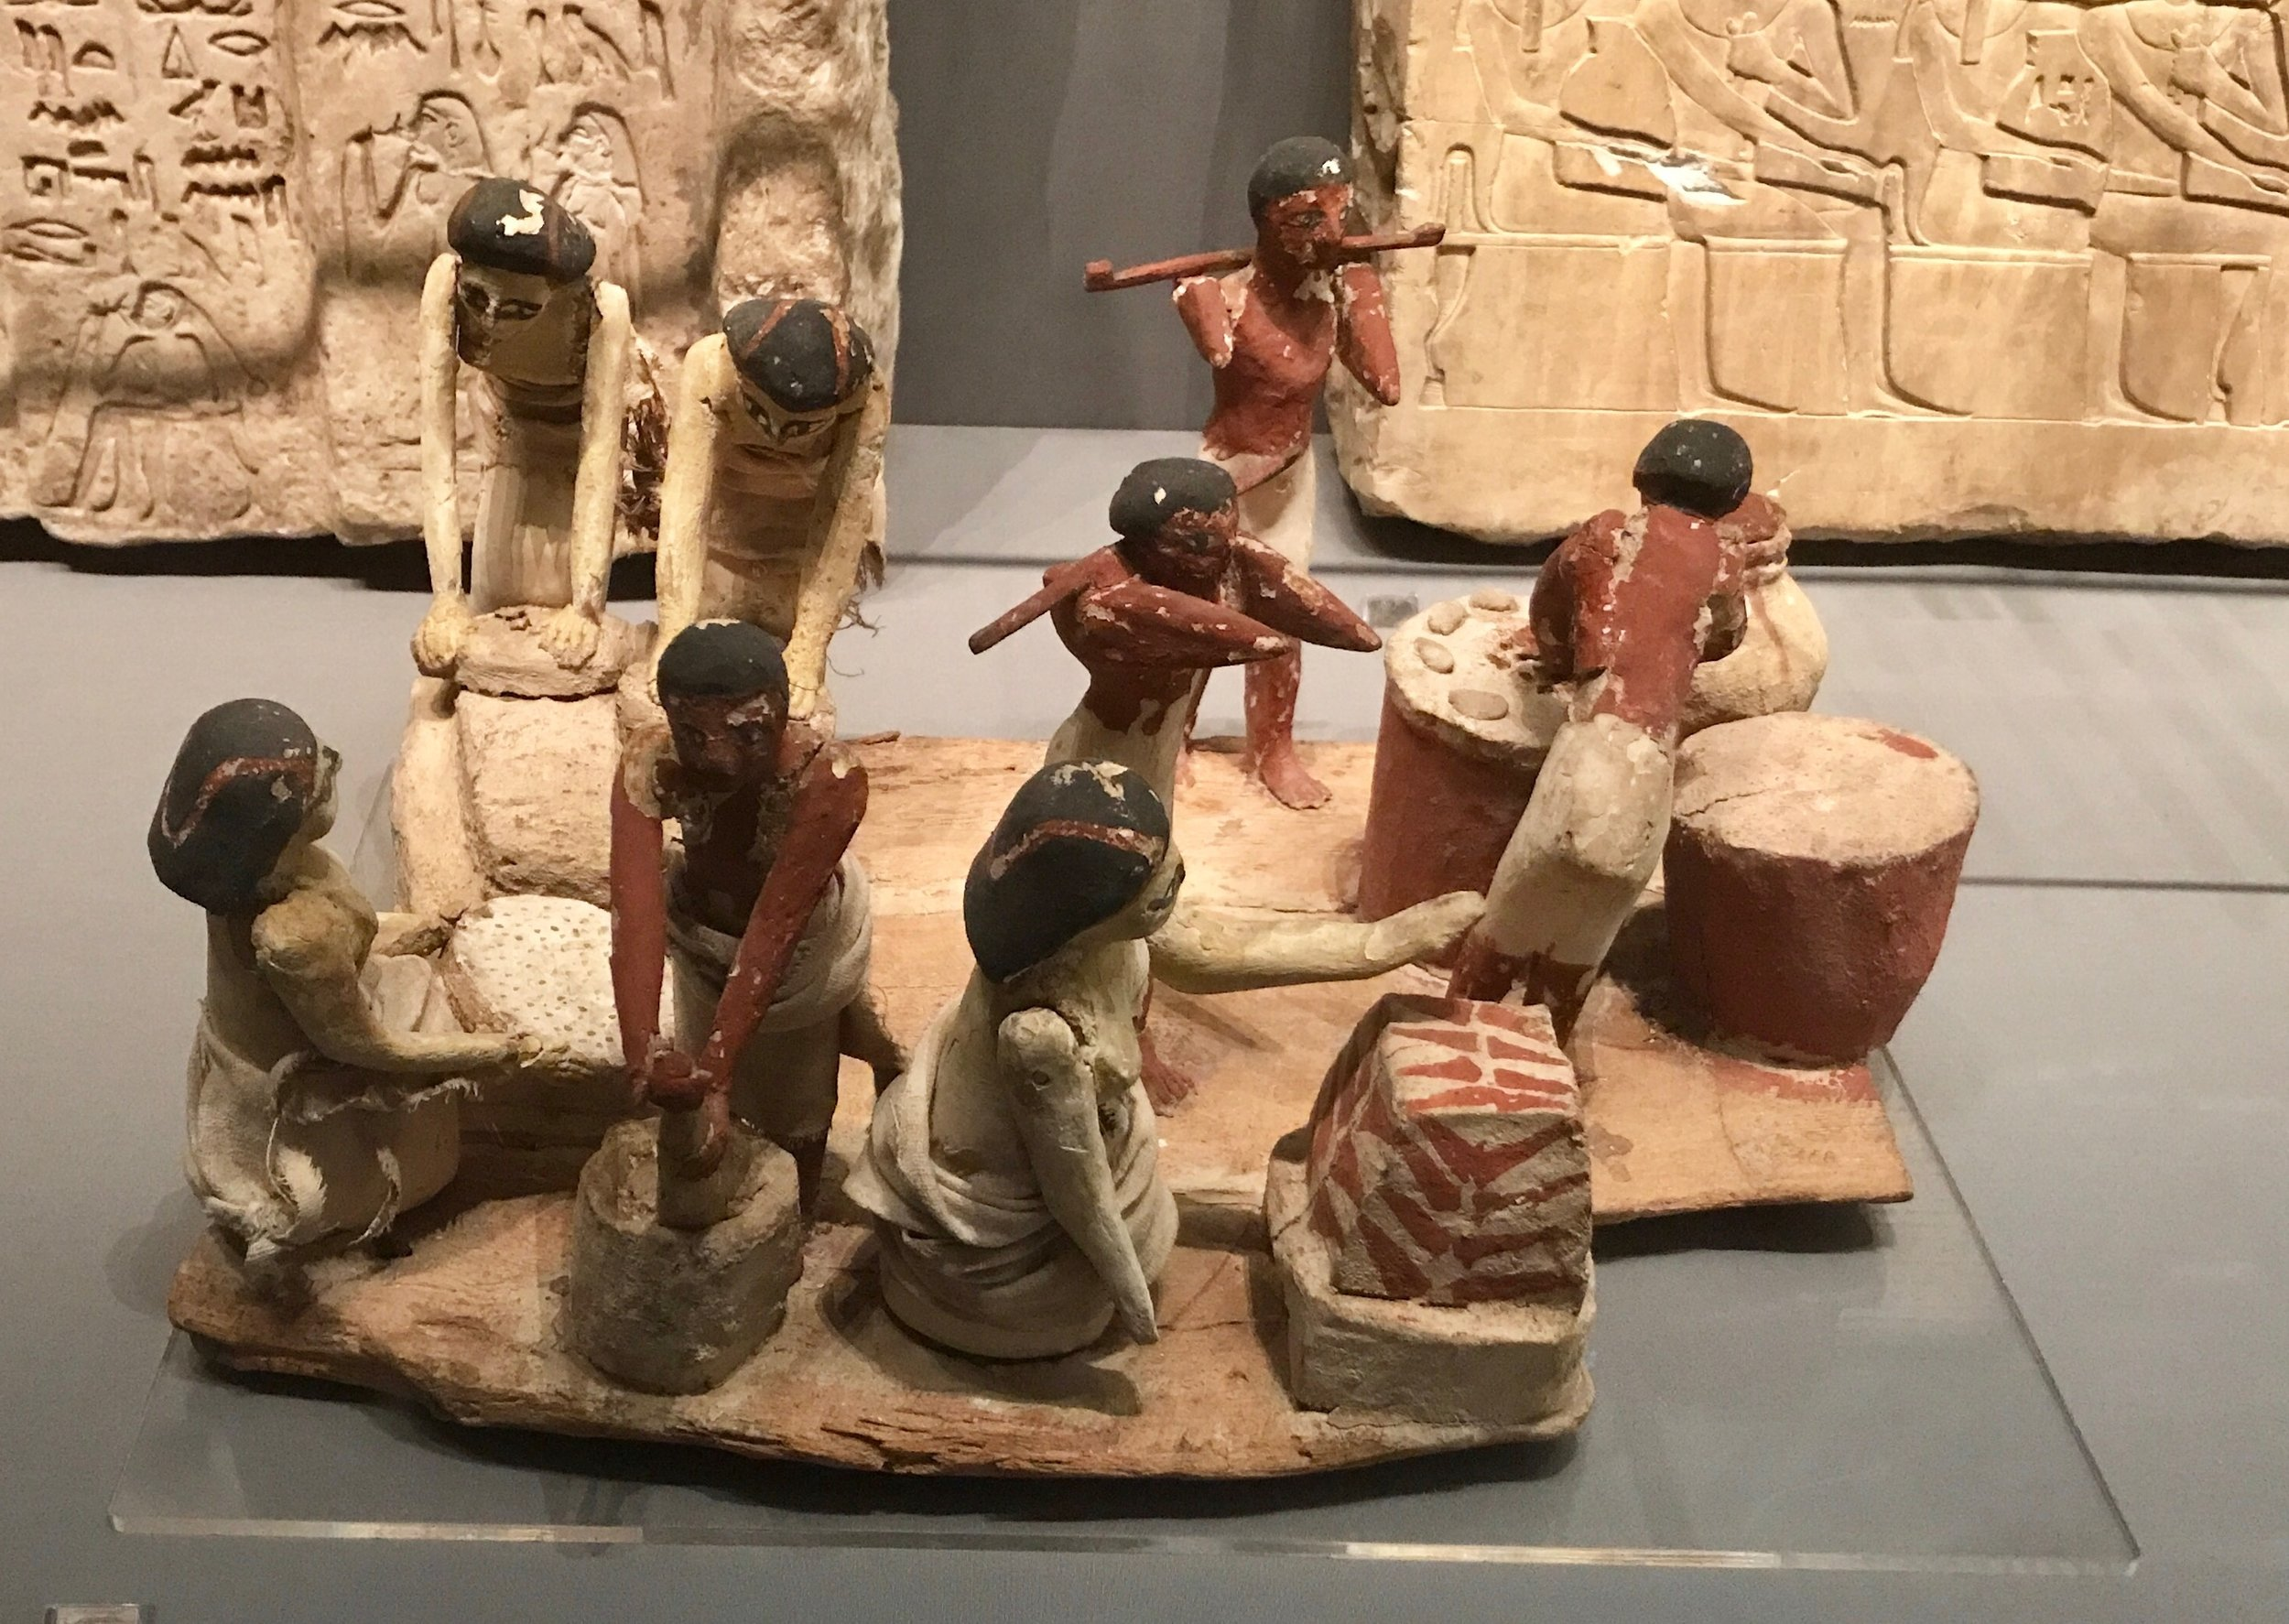 A well-staffed bakery 1950-1985 BC